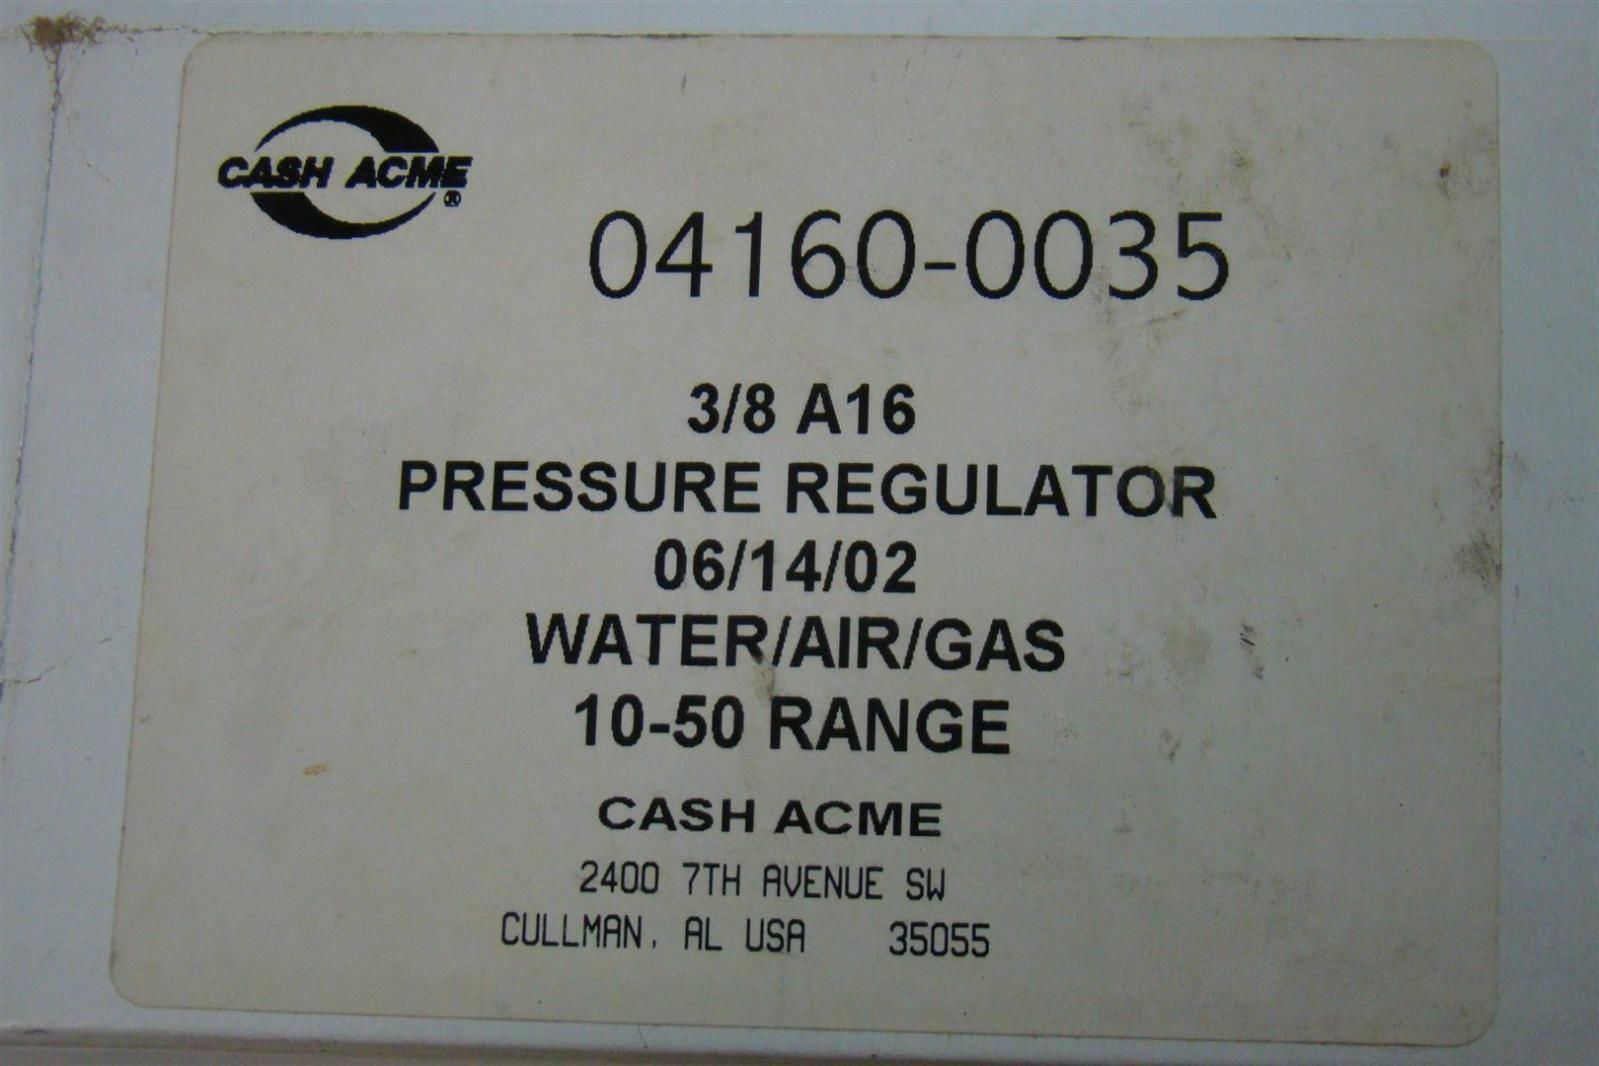 cash acme pressure regulator water air gas bf 10 50 range 4160 0035 ebay. Black Bedroom Furniture Sets. Home Design Ideas